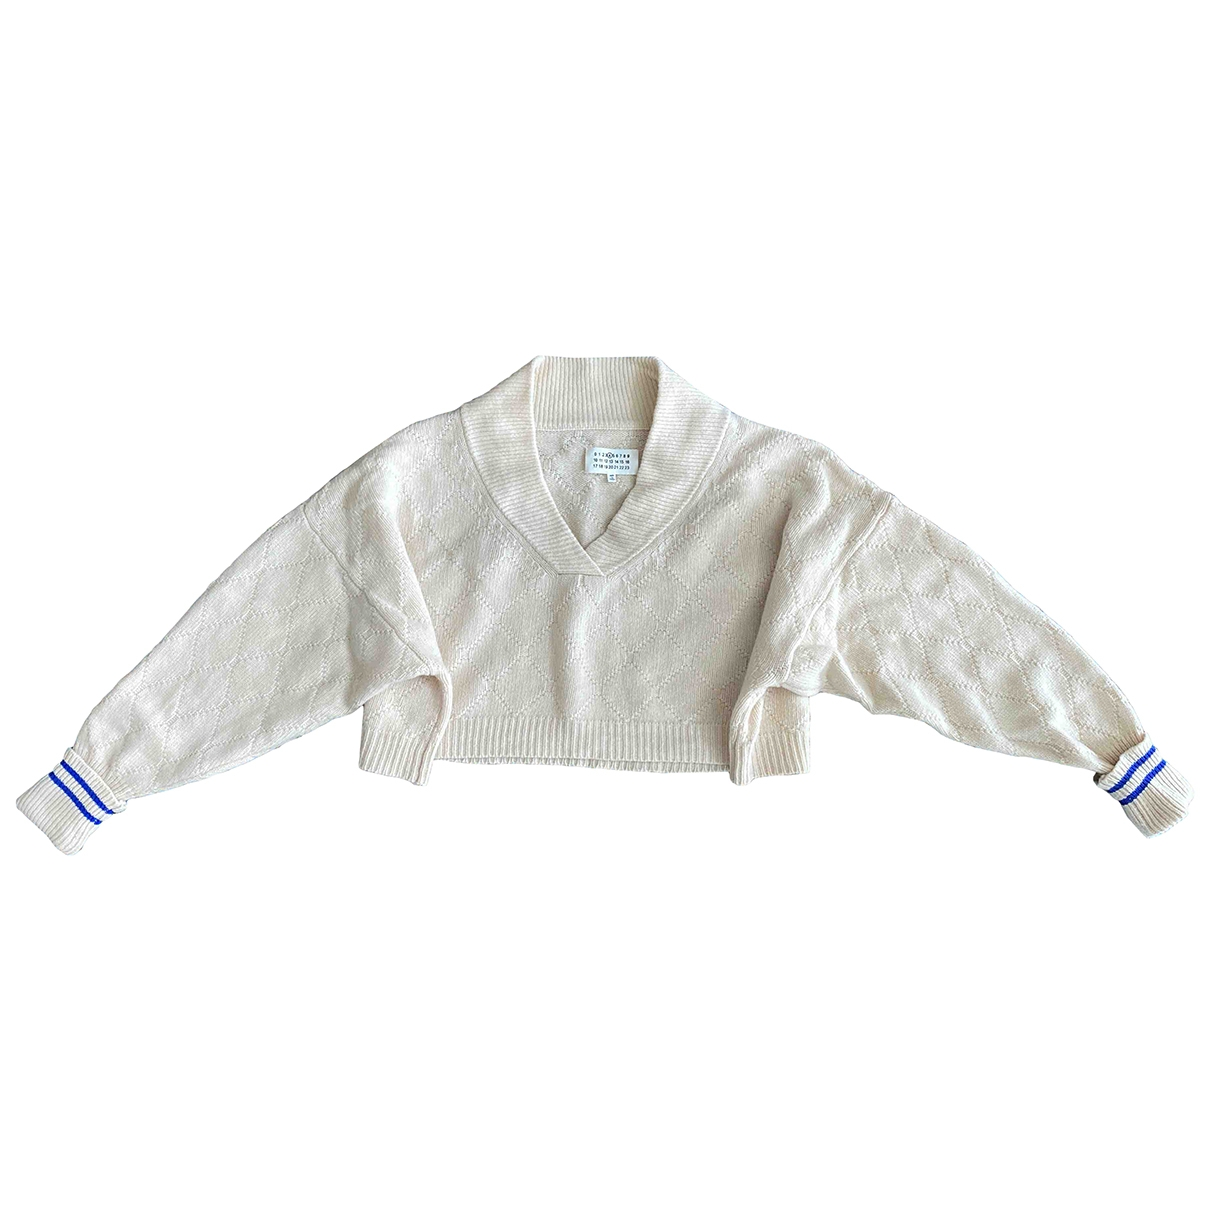 Maison Martin Margiela \N Ecru Wool Knitwear for Women S International